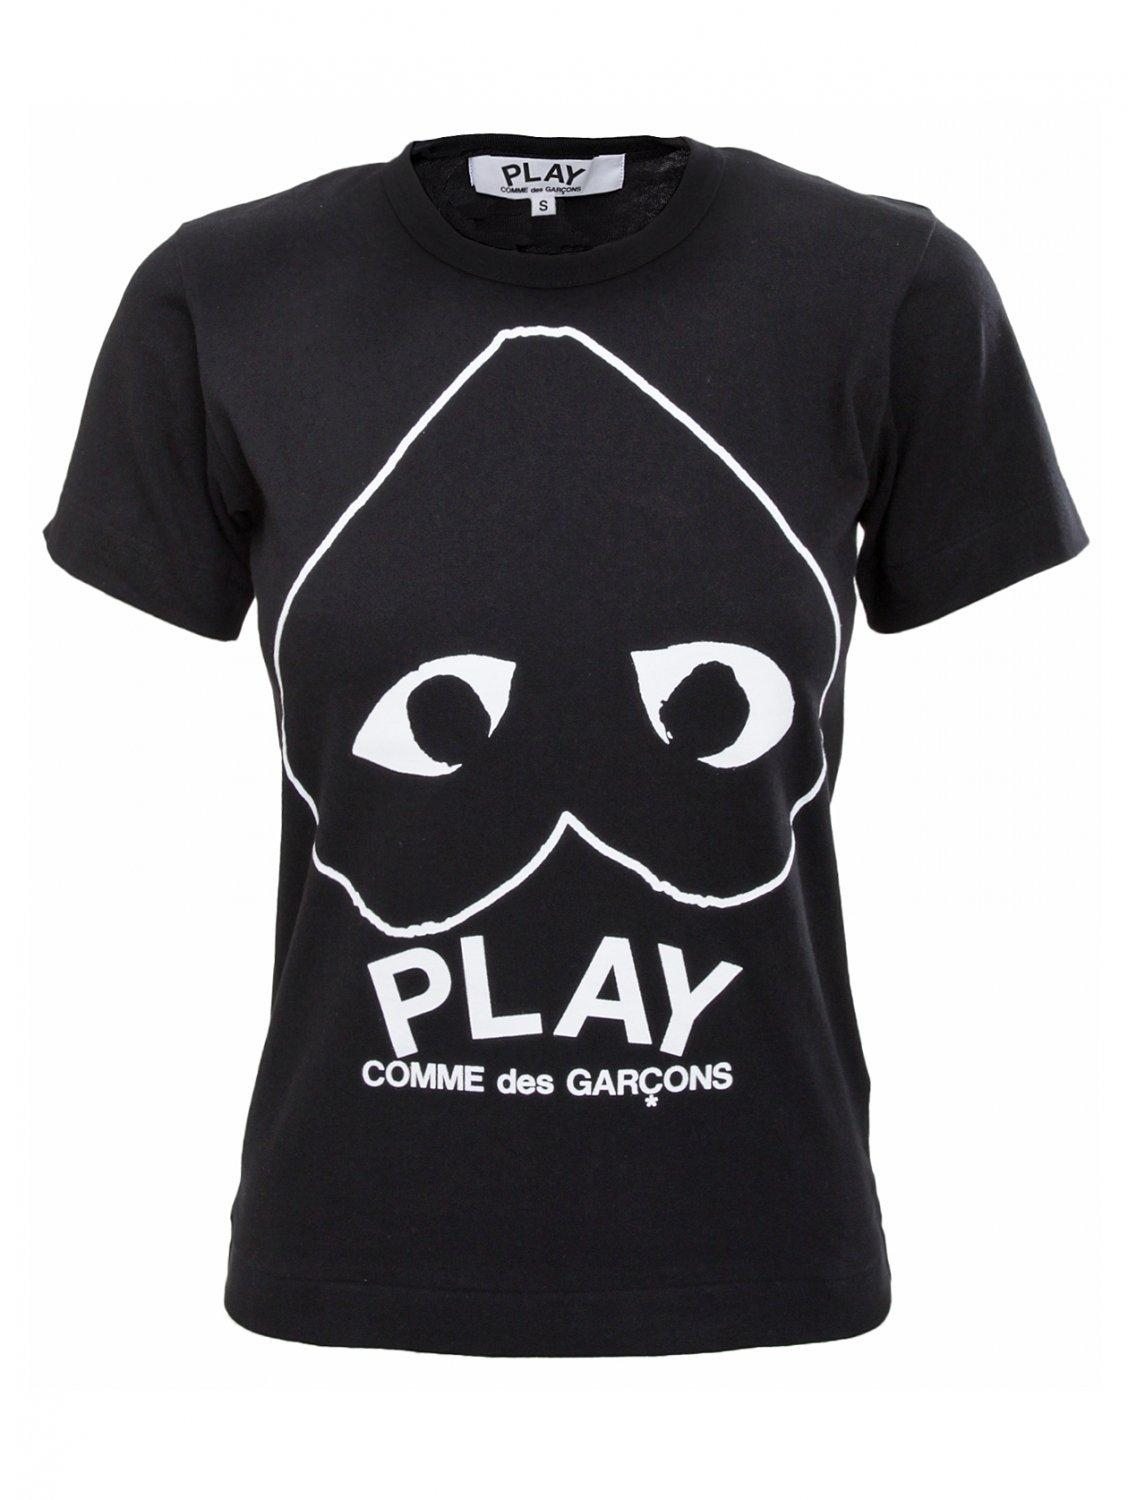 Lyst - Comme des garçons Play Womens Reverse Heart T-shirt Black in Black